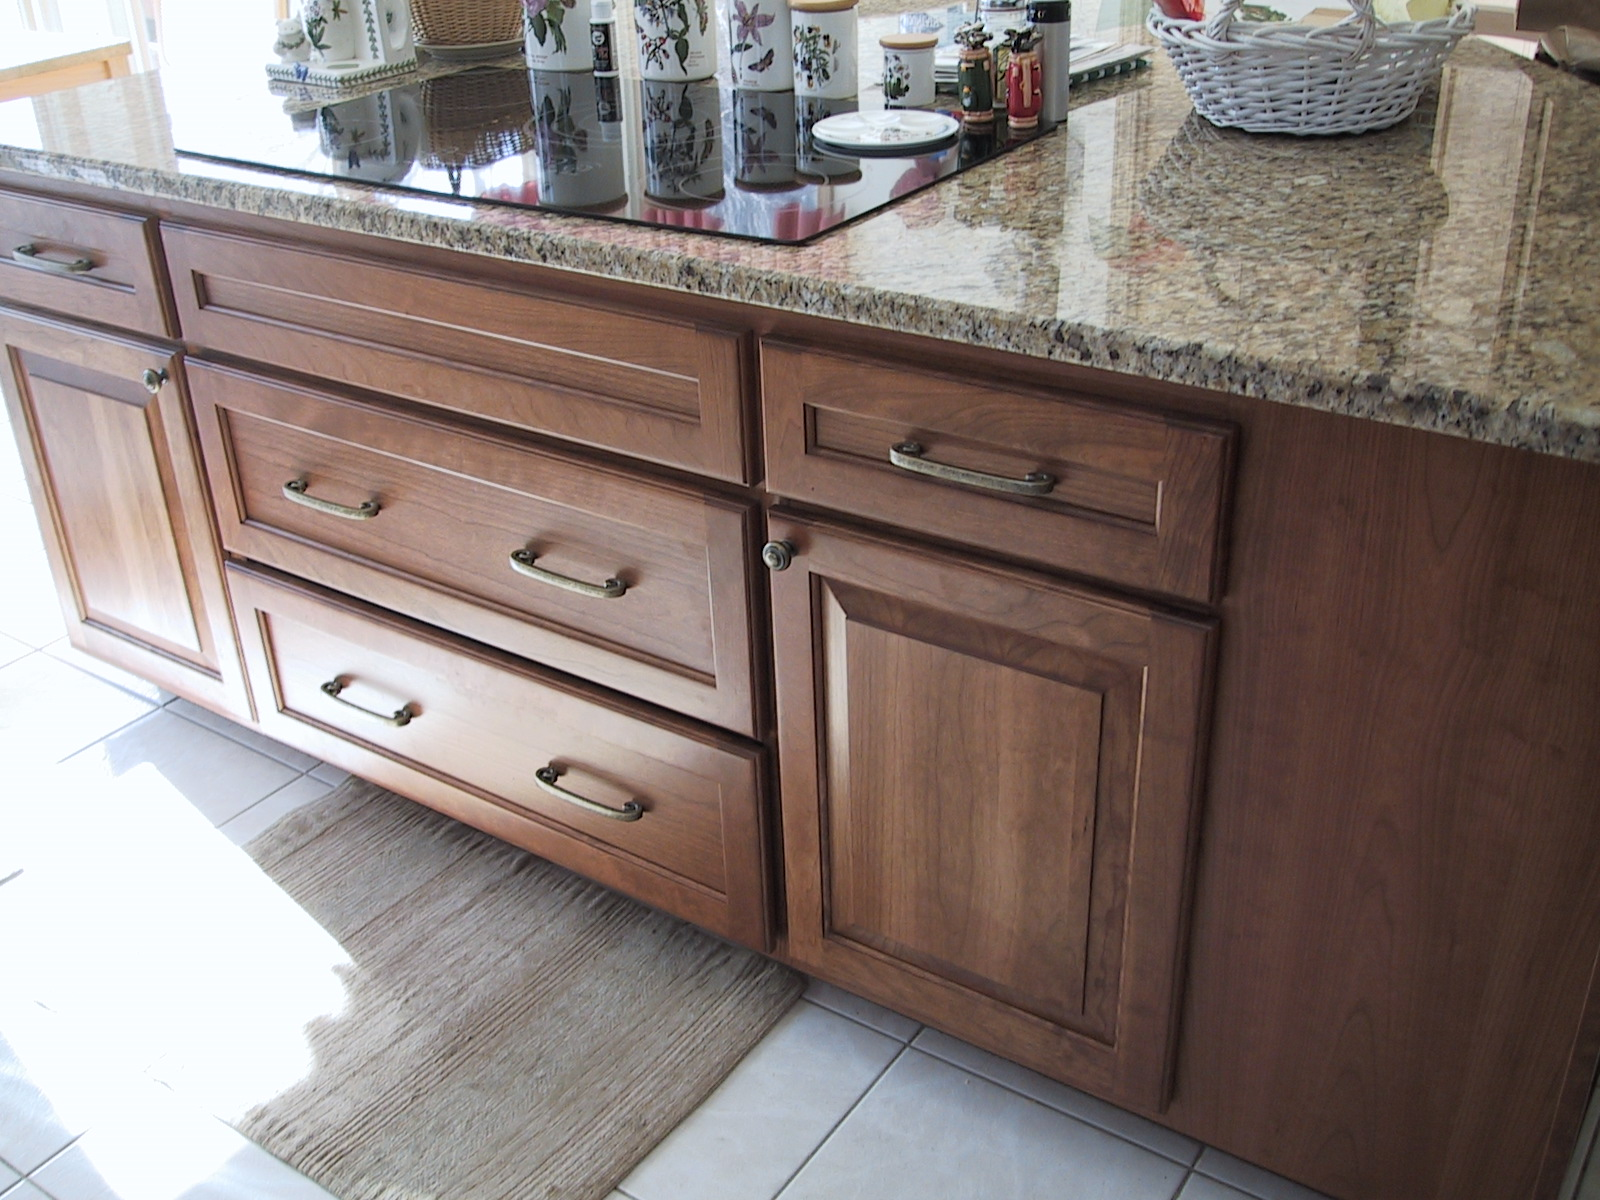 replace cabinets keep countertops